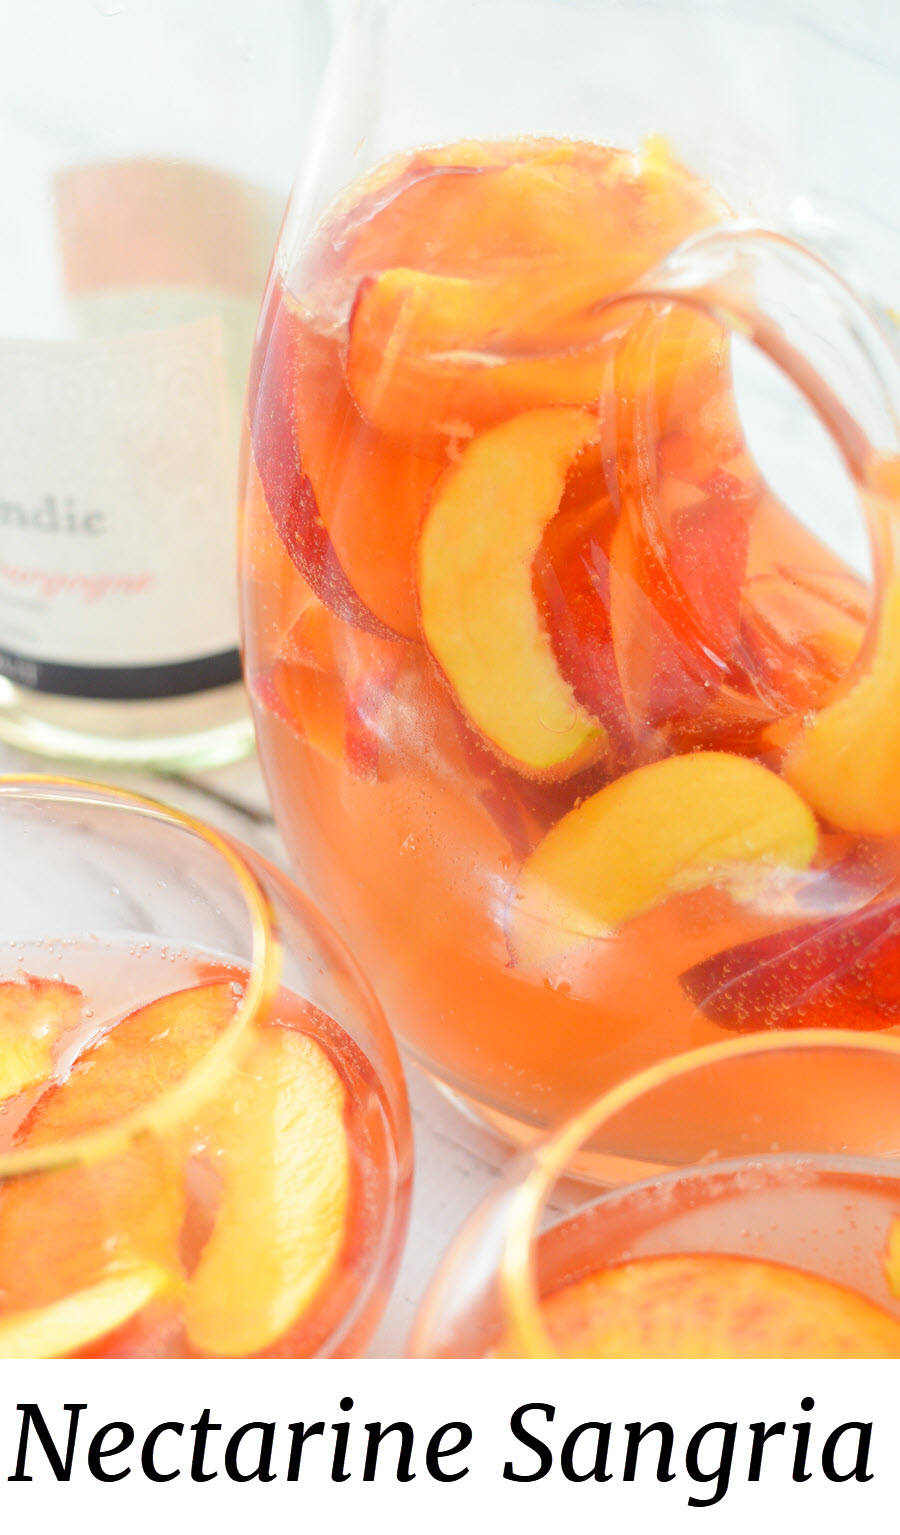 Nectarine Sangria w. Ginger + Orange Liqueur. A fresh fruit summer sangria. This nectarine cocktail made with sparkling rose wine is a great summer drink. #lmrecipes #sangria #cocktail #cocktails #drinkrecipe #summer #nectarines #summerrecipes #foodblog #foodblogger